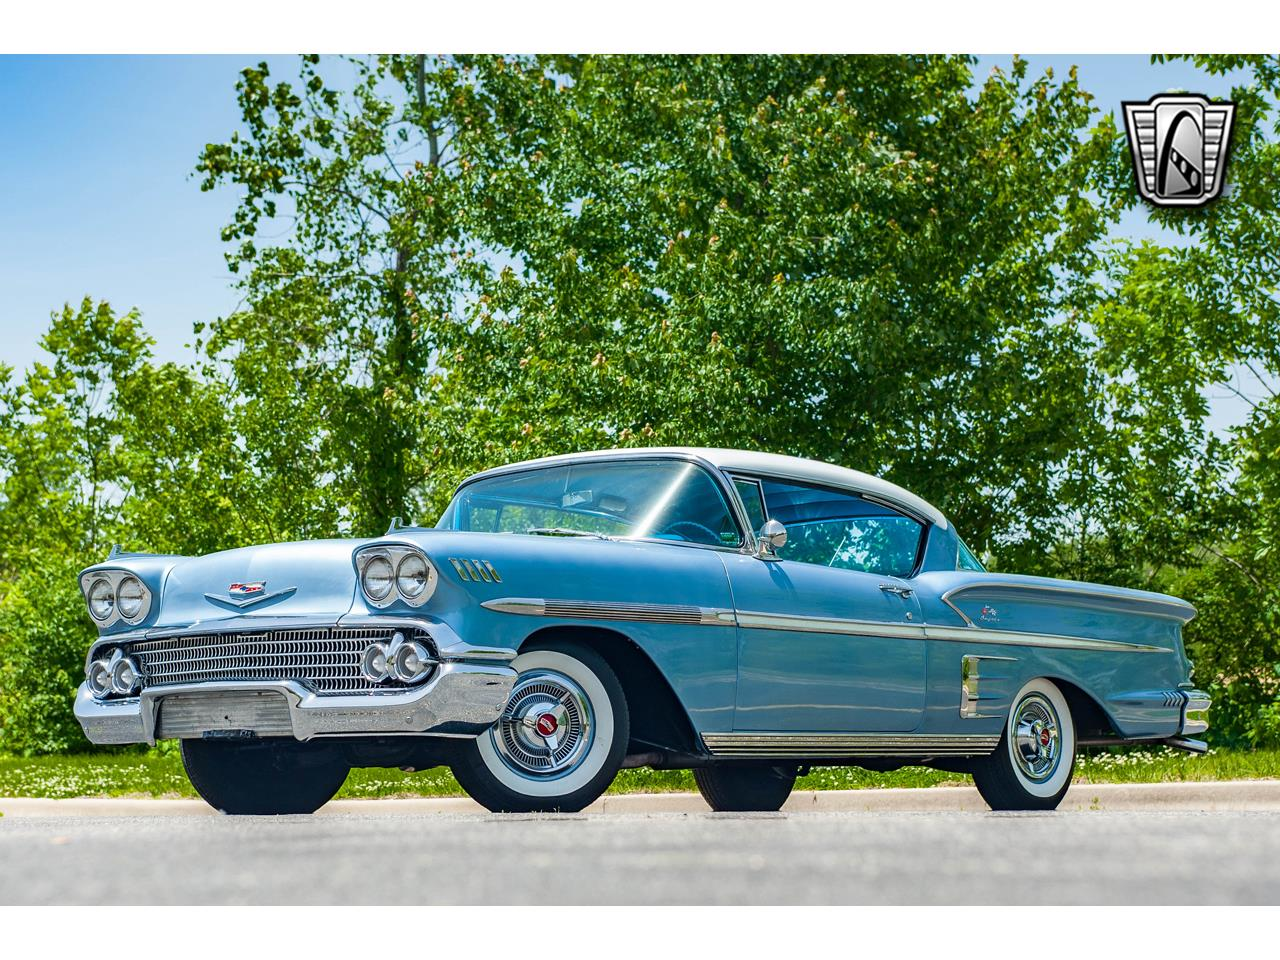 Large Picture of 1958 Chevrolet Impala located in O'Fallon Illinois - $62,000.00 Offered by Gateway Classic Cars - St. Louis - QB9Q